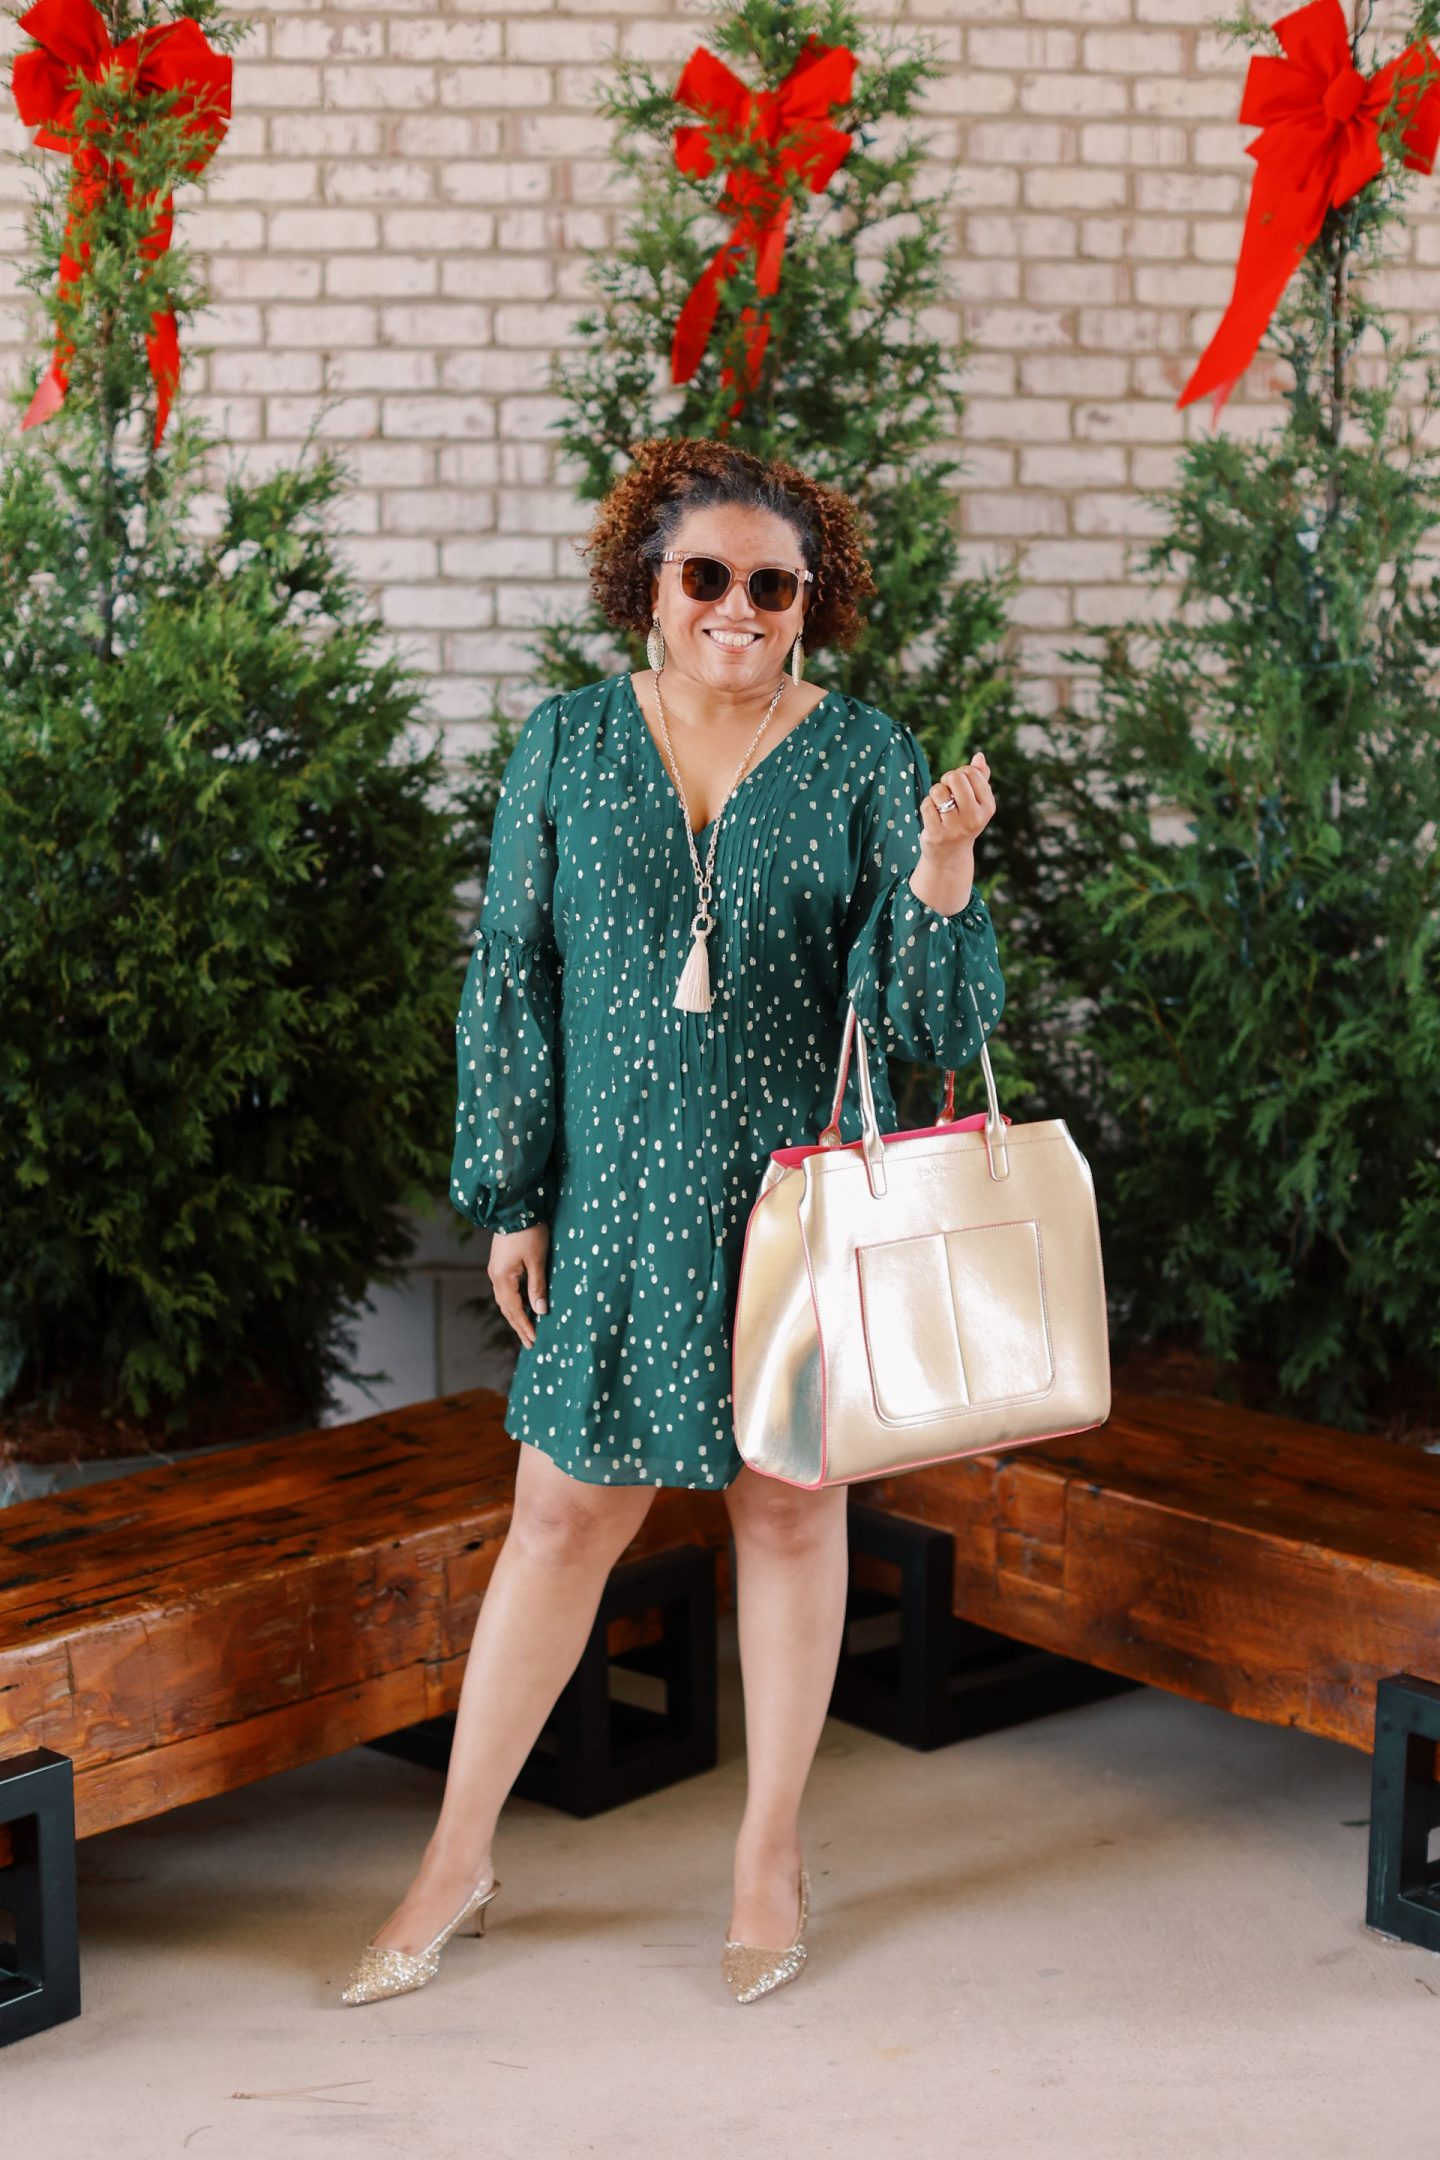 Friday Faves by popular Kentucky fashion blog, Really Rynetta: image of a woman standing in front of some pine trees and wearing a Lilly Pulitzer Cleme Silk Dress, Lilly Pulitzer Shaina Slingback Glitter Heel, Lilly Pulitzer Lilly Lace Statement Earrings, and holding a gold tote bag.